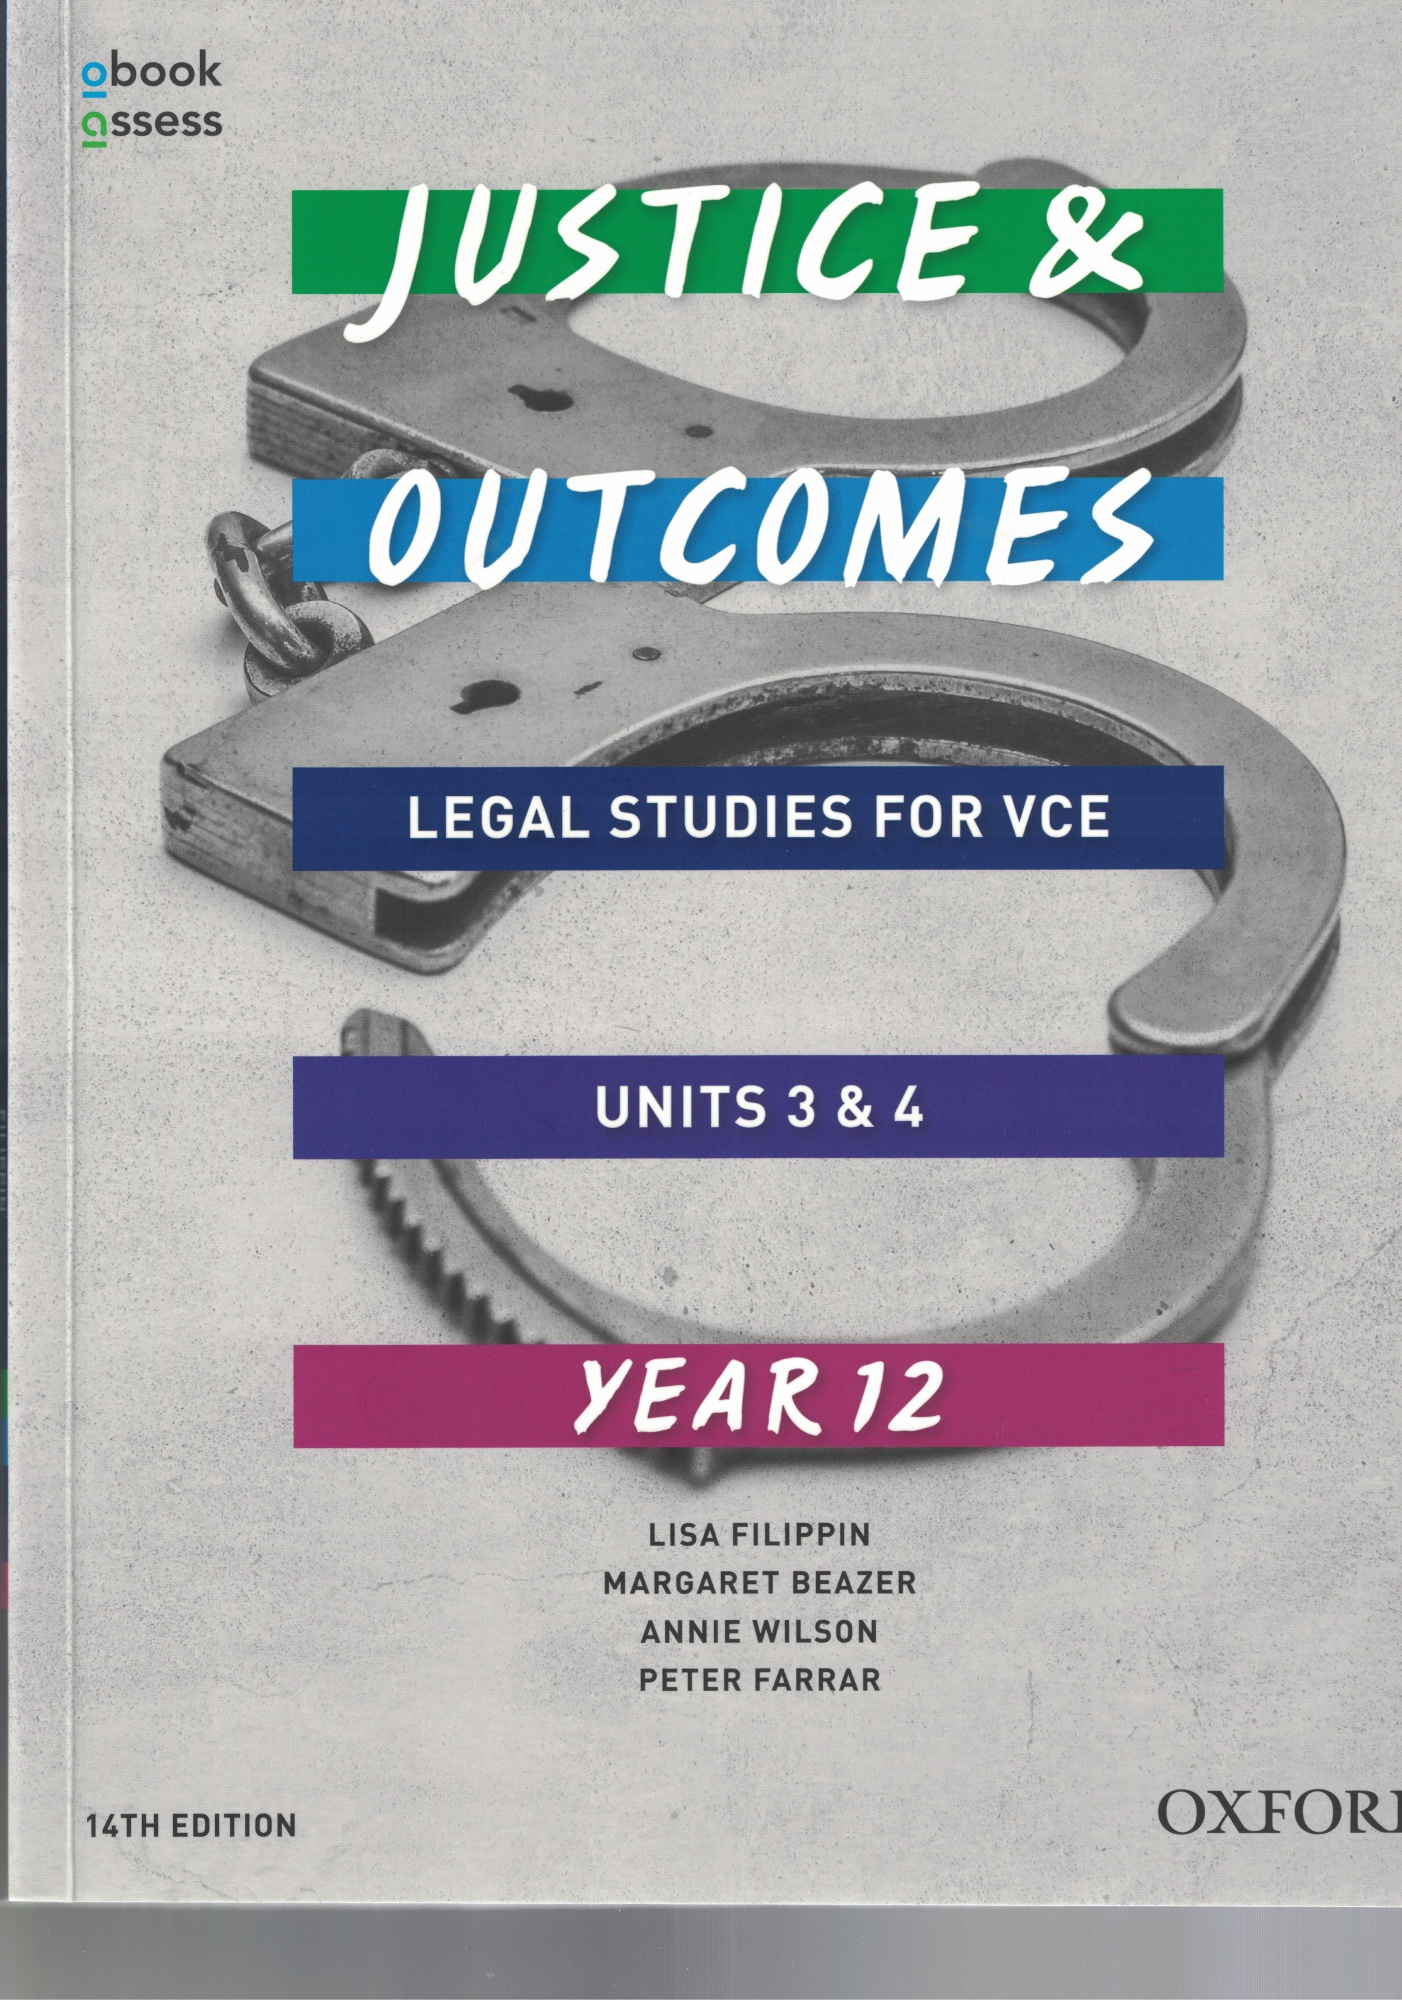 Justice and Outcomes VCE Legal Studies Unit 3 &4 Student book + obook assess by Lisa Filippin,Josie Gray,Margaret Beazer,Annie Wilson,Peter Farrar, ISBN: 9780190310363